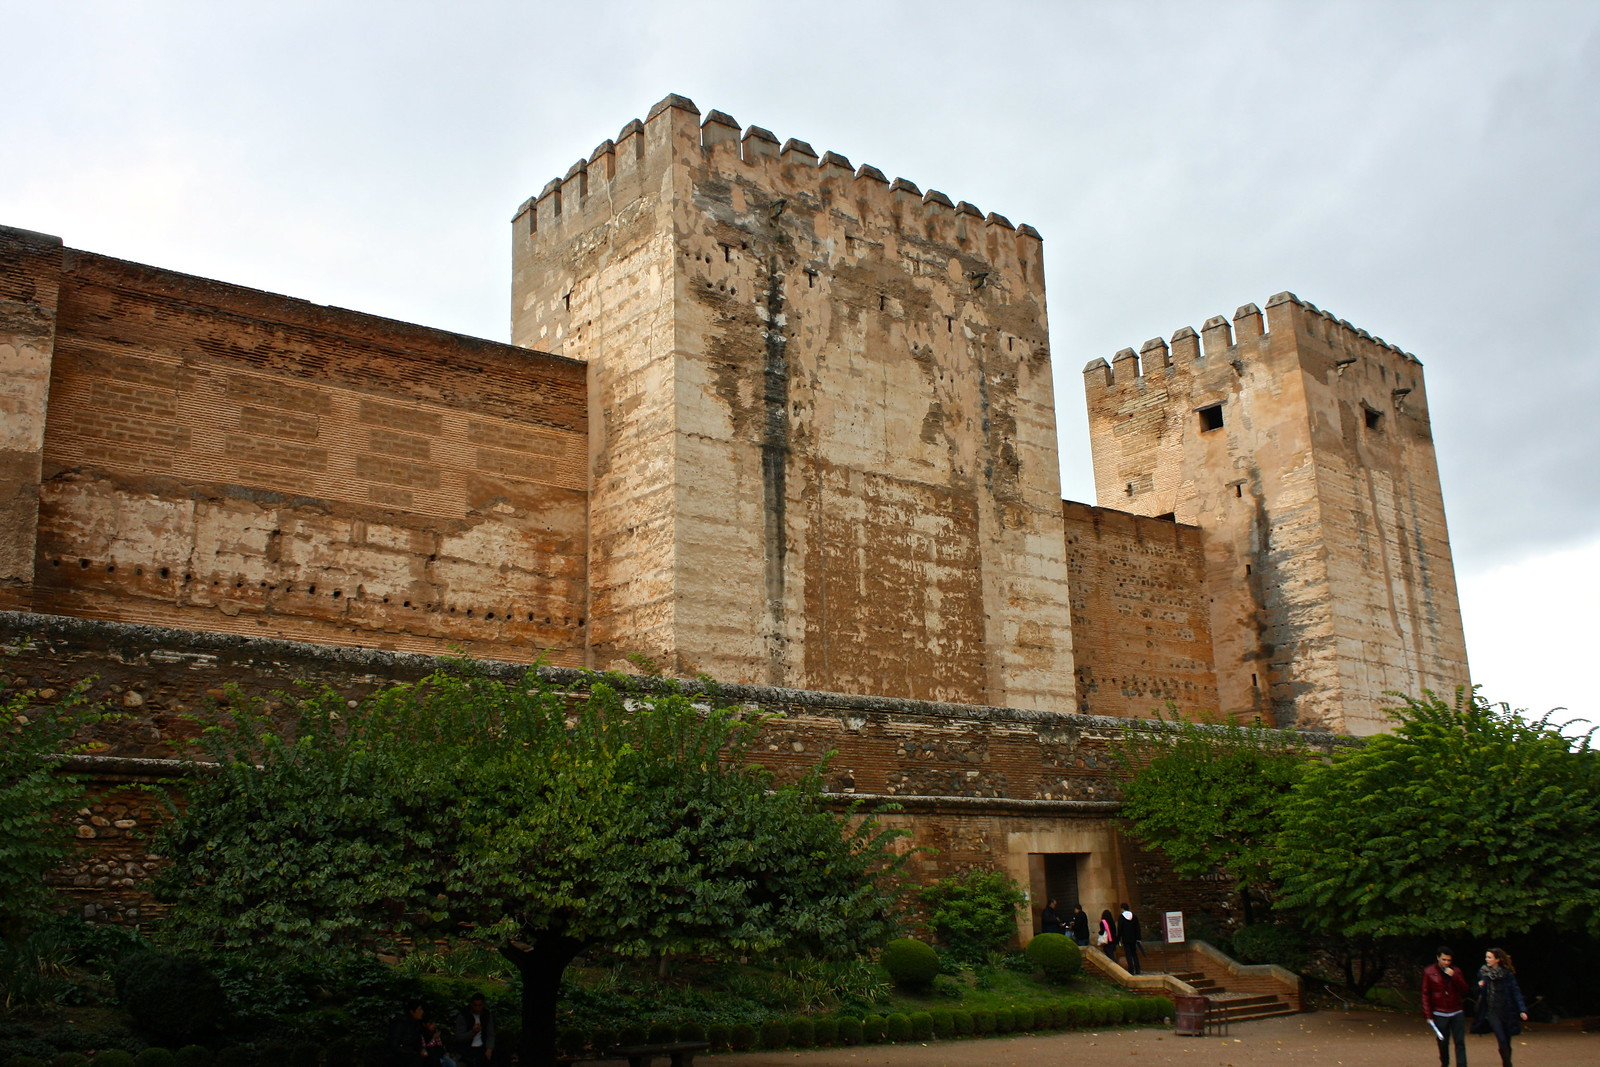 Alcazaba castle in the Alhambra, Granada, Spain